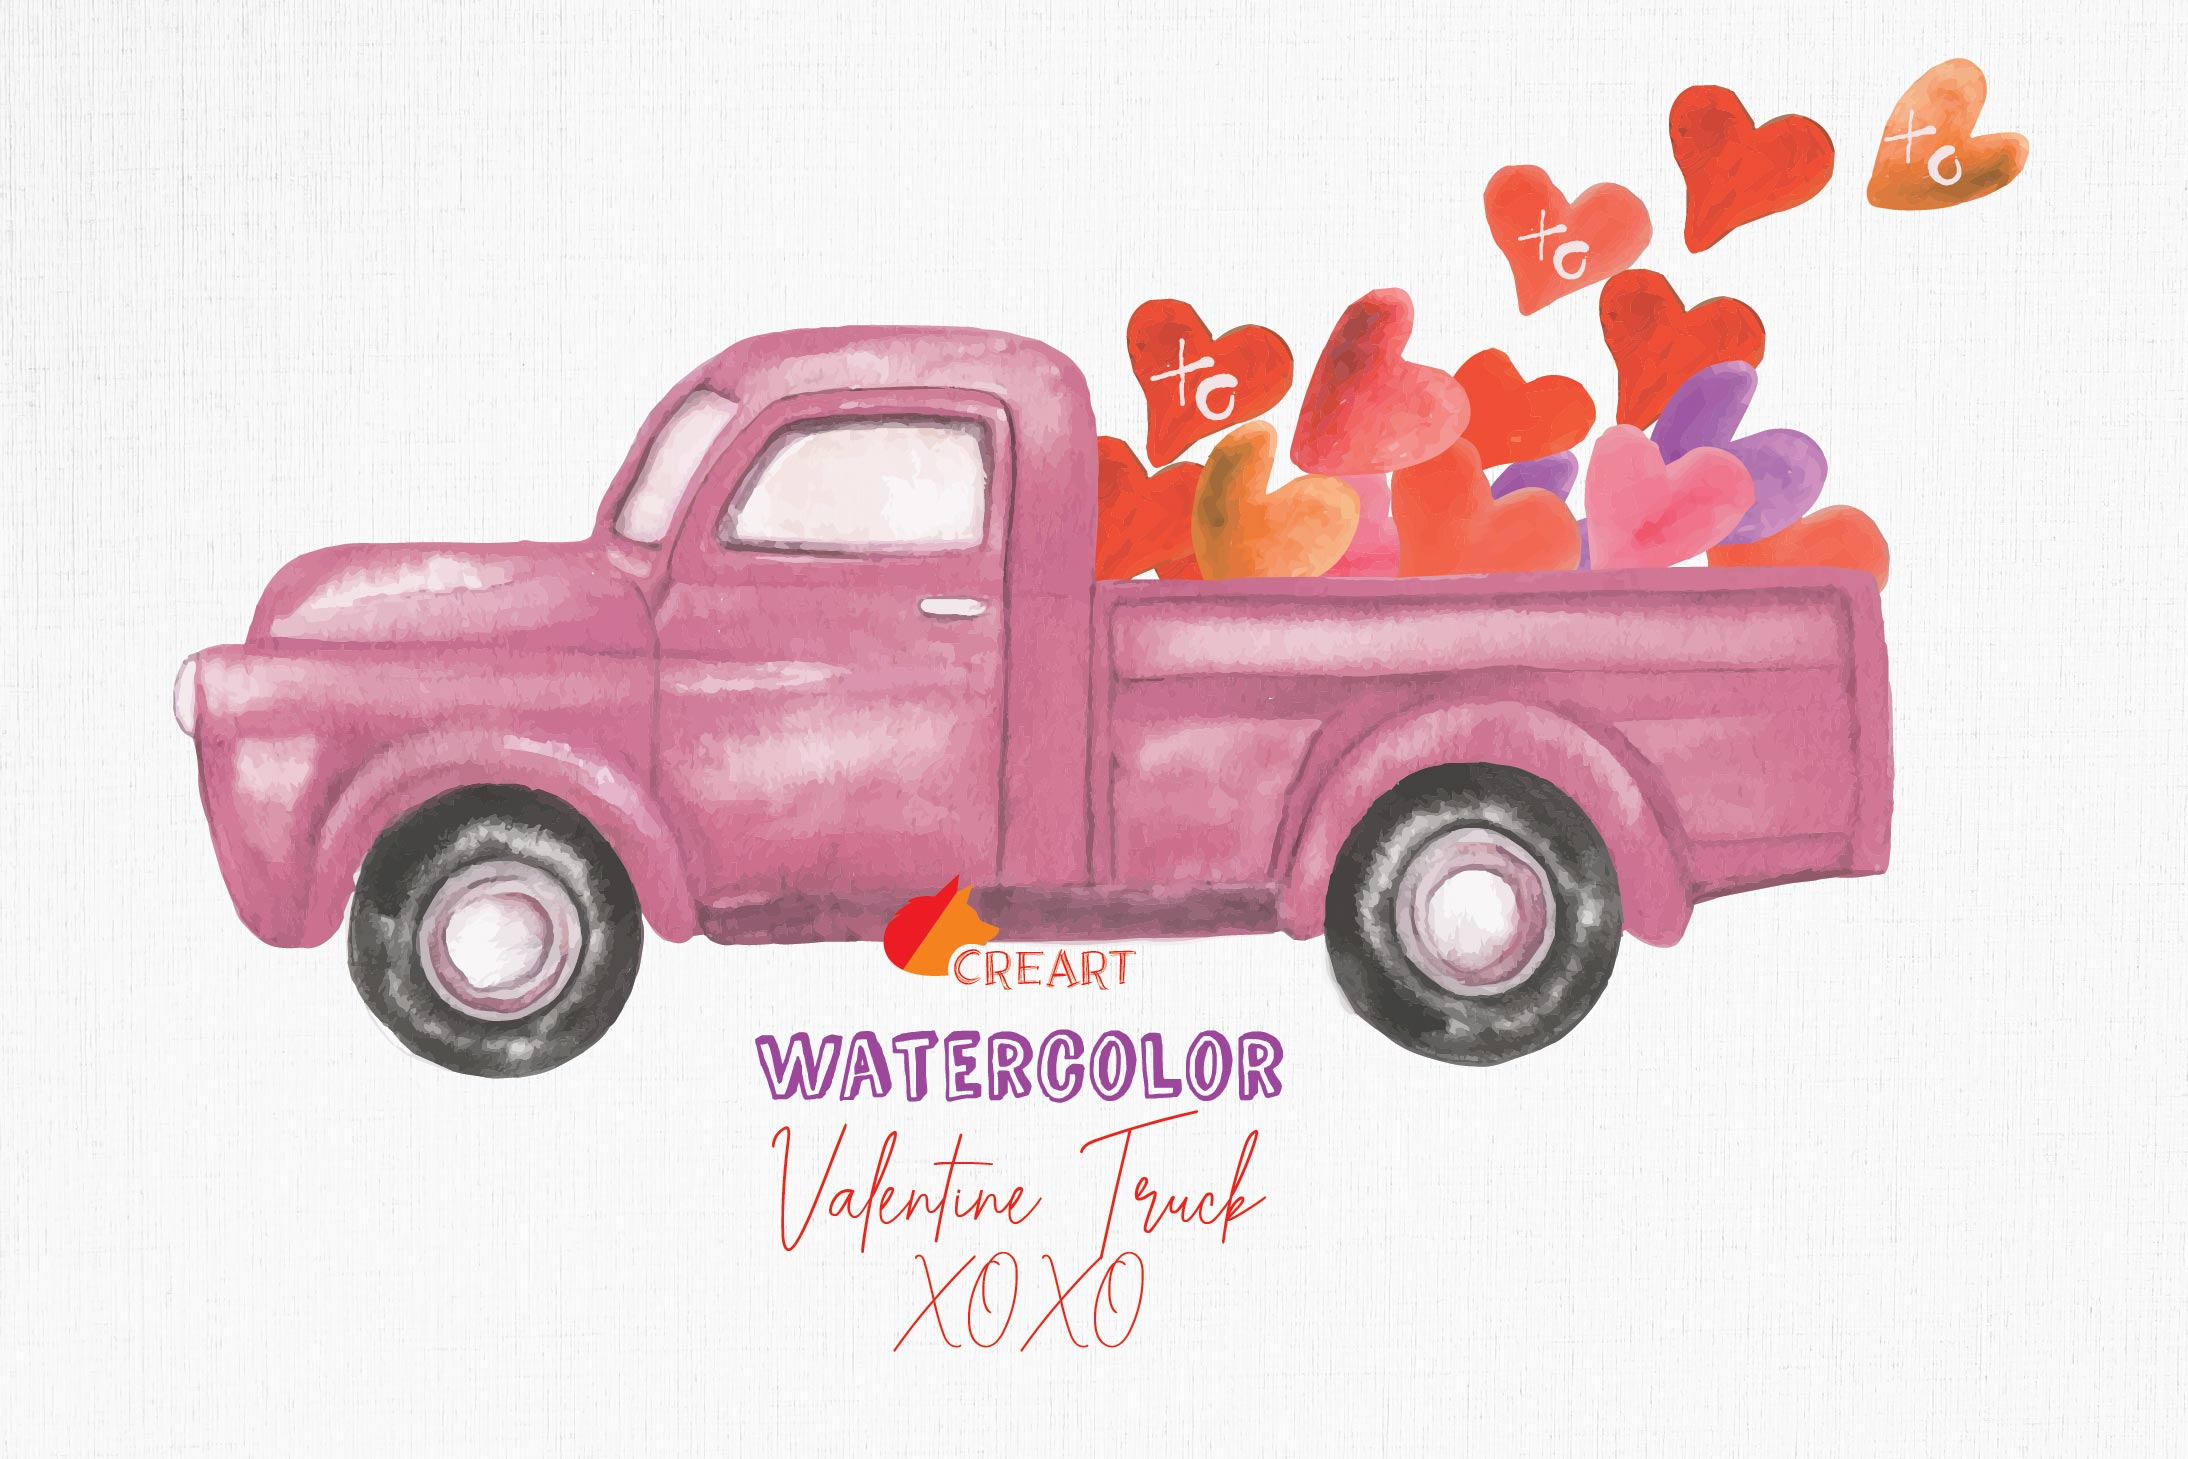 Watercolor vintage Valentine truck load with kisses XOXO png example image 1